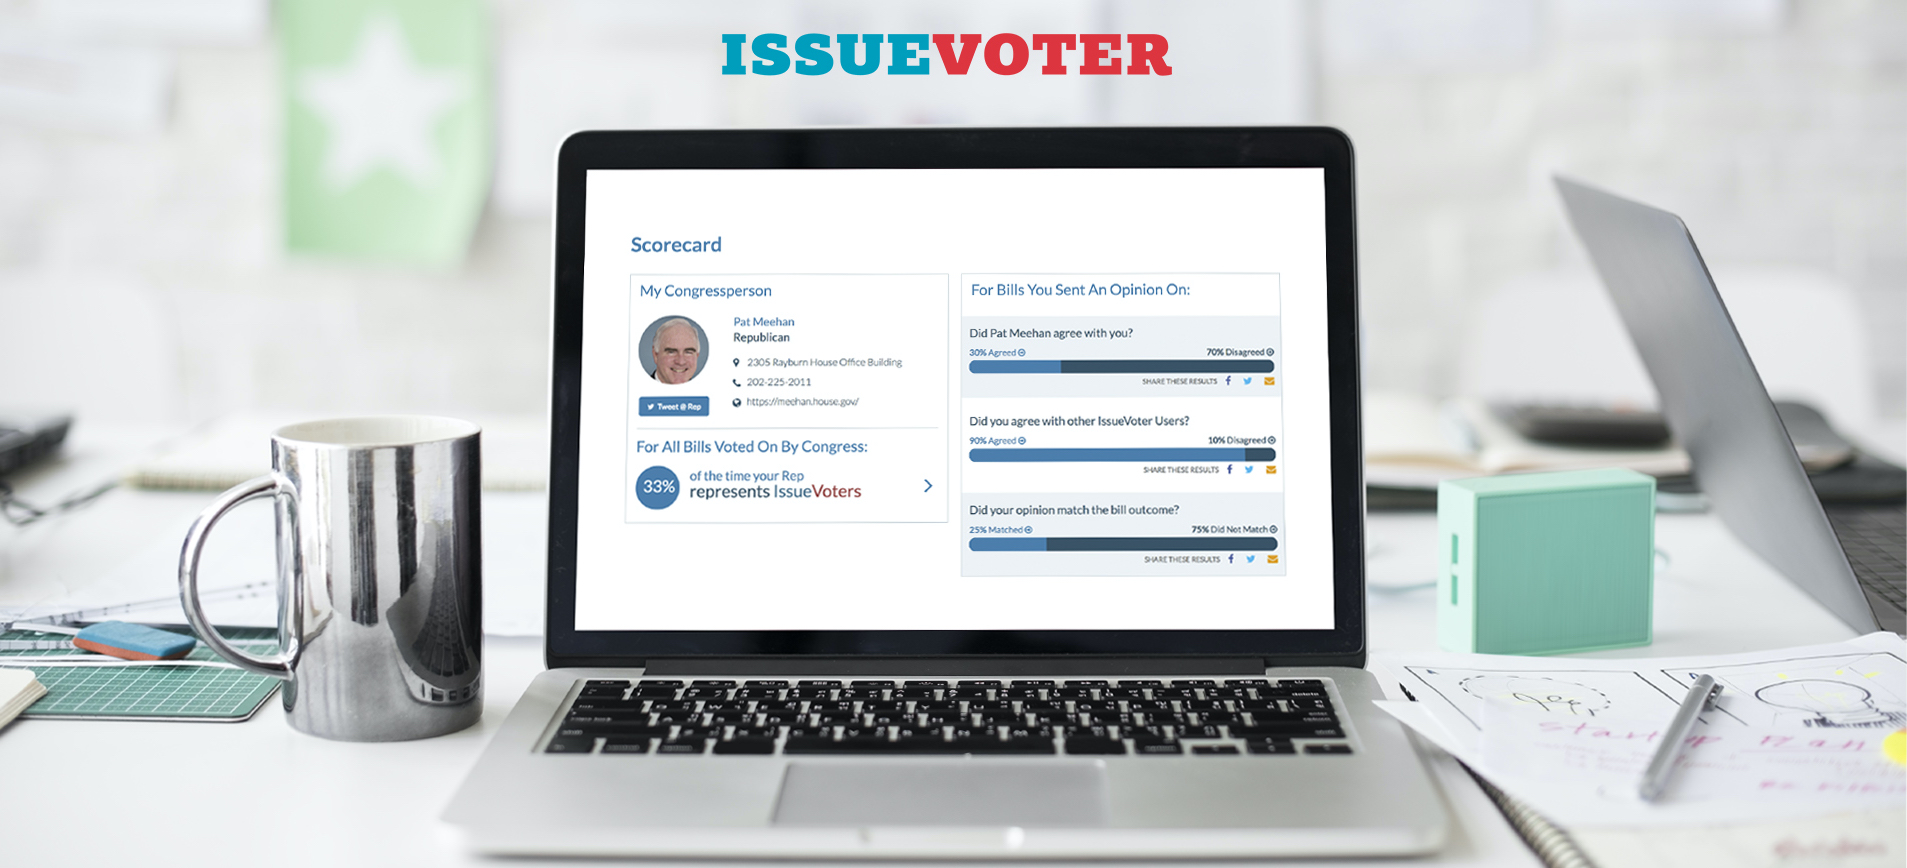 Copy of Getting Ready To Vote